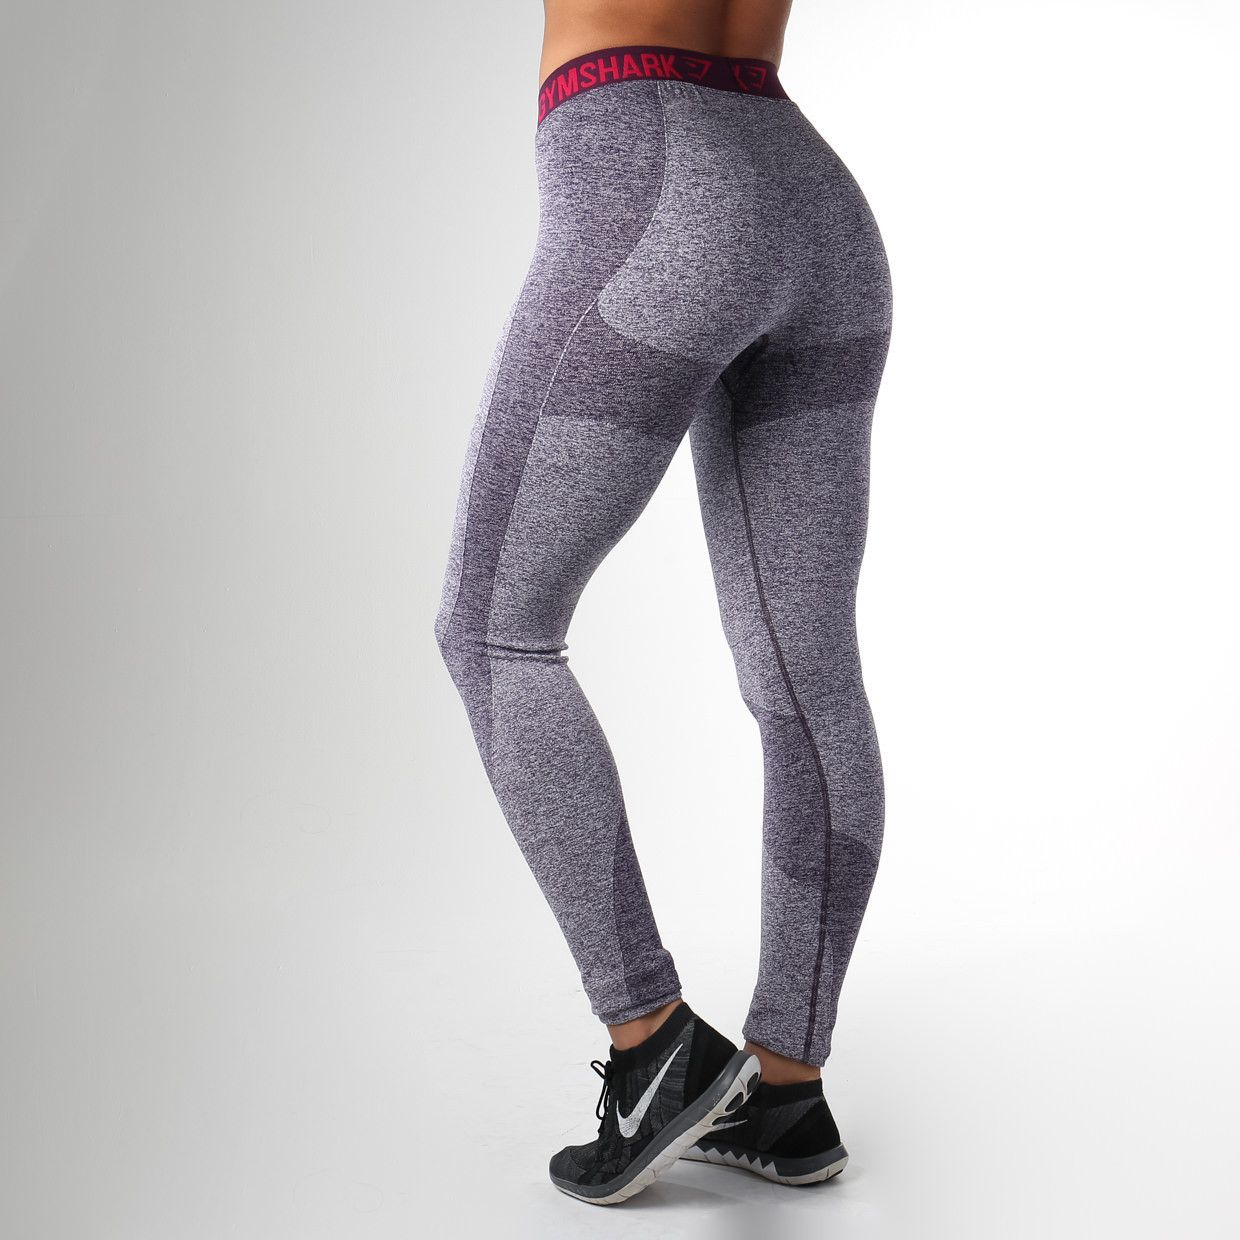 4a3d6360251576 Gymshark Flex Leggings - Blackberry Marl/Plum | Get Fit | Get Fine ...